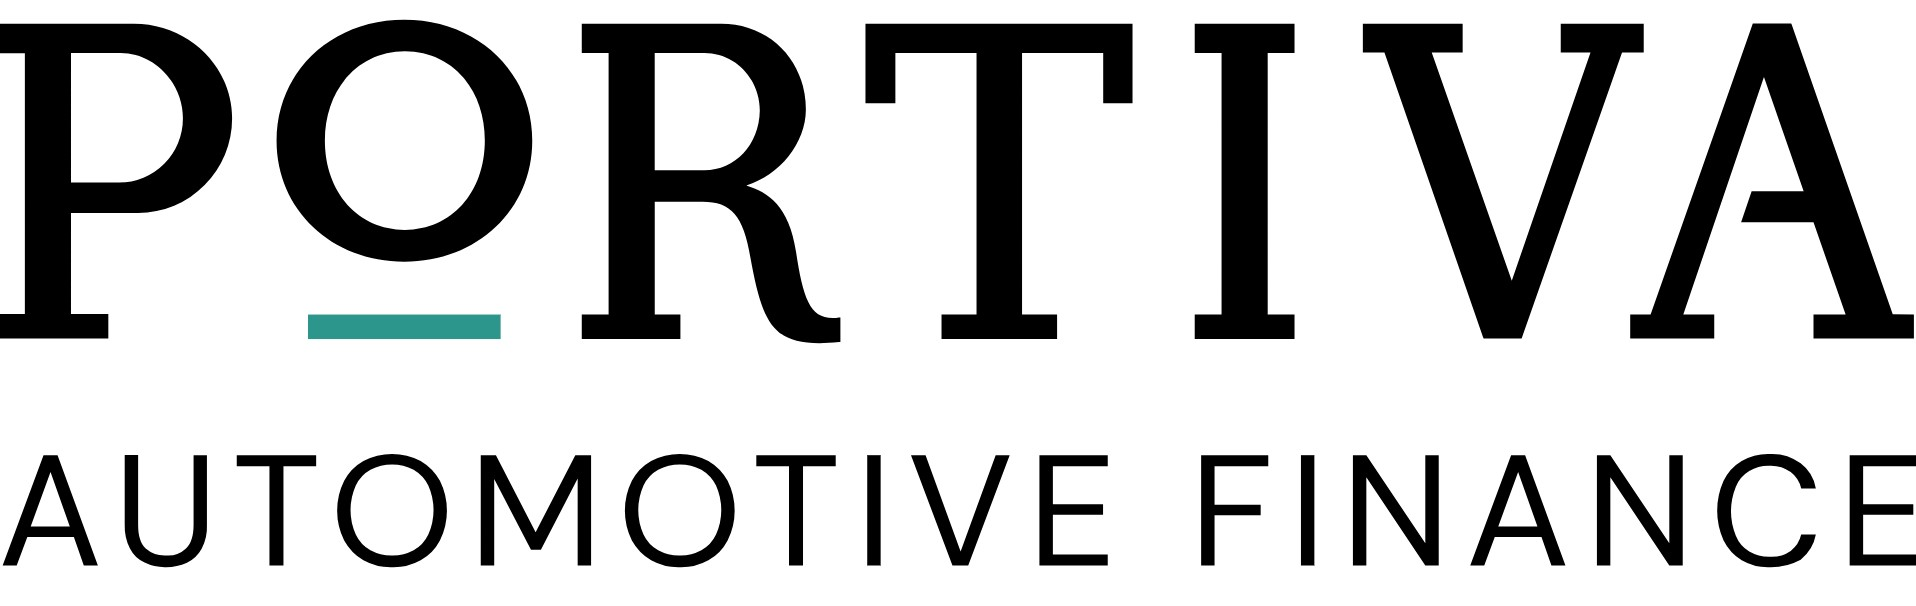 Portiva Automotive Finance II. ‎‏‏‎ ‎‏‏‎ ‎‏‏‎ ‎‏‏‎ ‎‏‏‎ ‏‏‎ ‎‎‏‏‎ ‎‏‏‎ ‏‏‎ ‎‏‏‎ ‎‎‏‏‎ 6 % / 2025